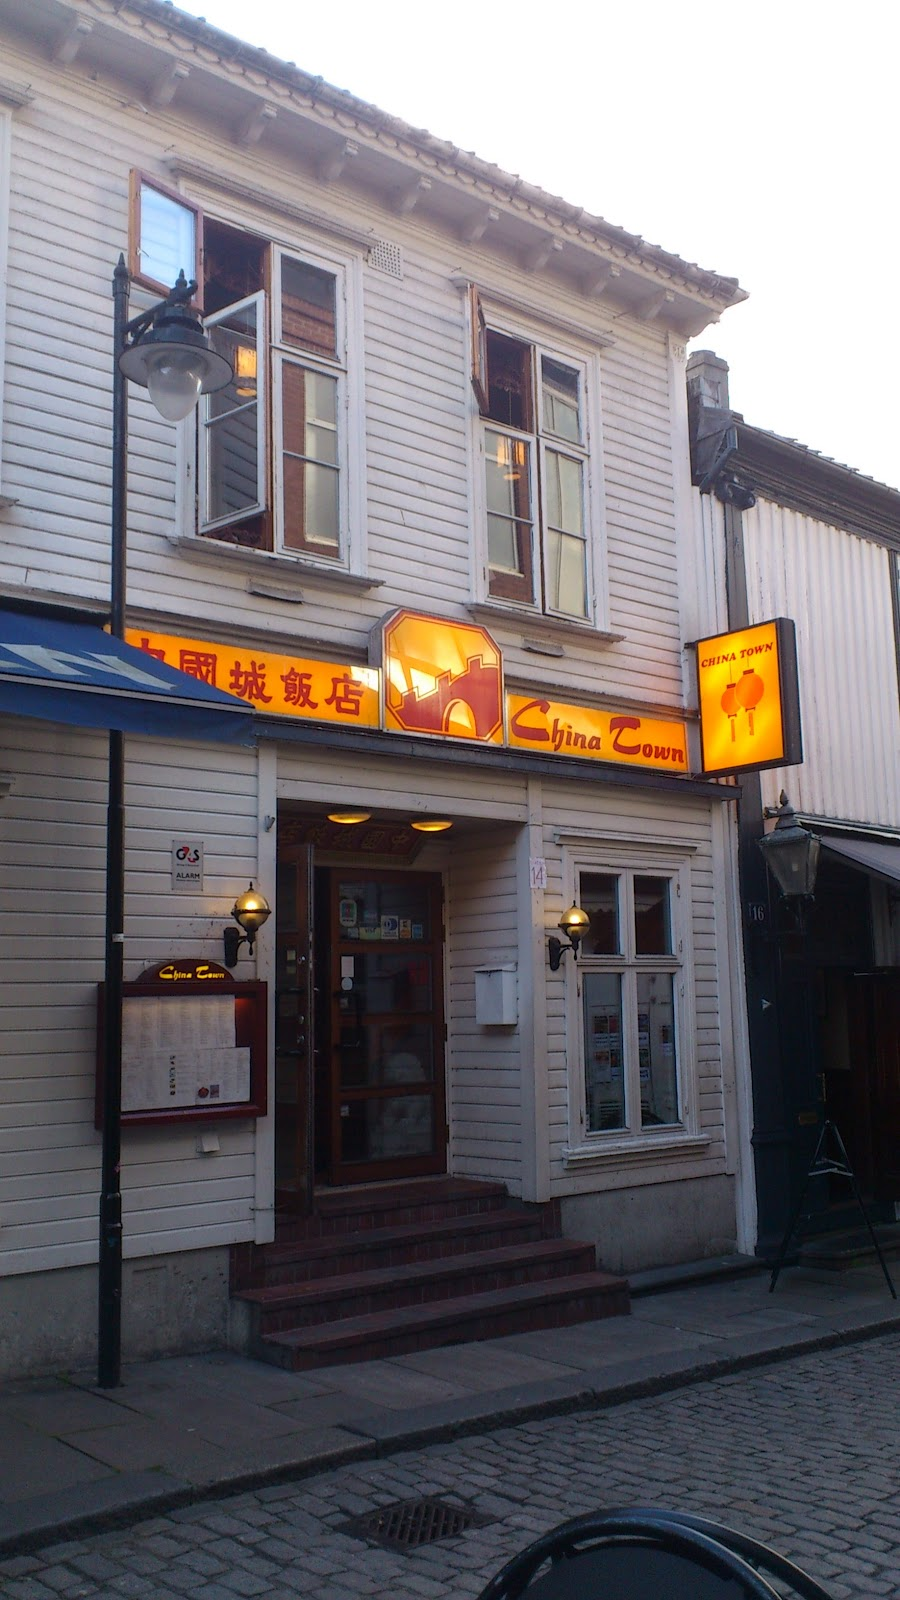 stavanger restaurants review china town a good chinese restaurant in city center. Black Bedroom Furniture Sets. Home Design Ideas